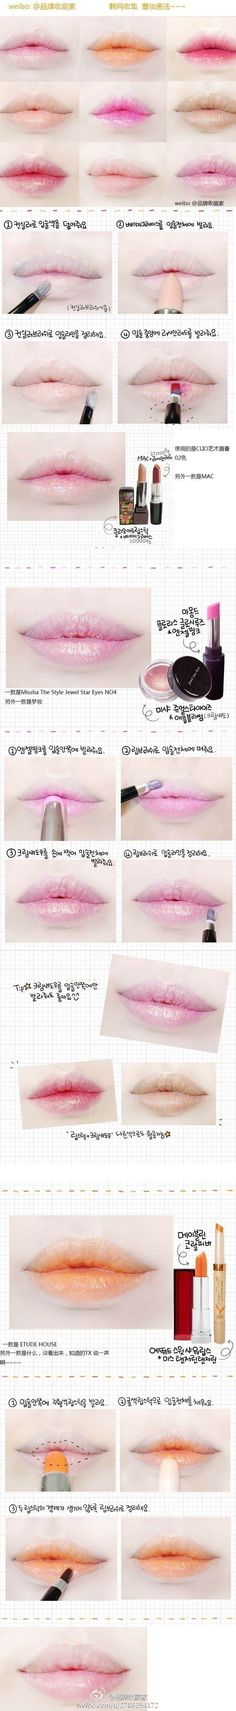 "Gradient lips give that ""just ate a popsicle"" adorable look that can be part of your daily make up. Kawaii Makeup, Cute Makeup, Lip Makeup, Beauty Makeup, Gradient Lips, Ombre Lips, Pink Lips, Colour Gradient, Korean Makeup Tutorials"